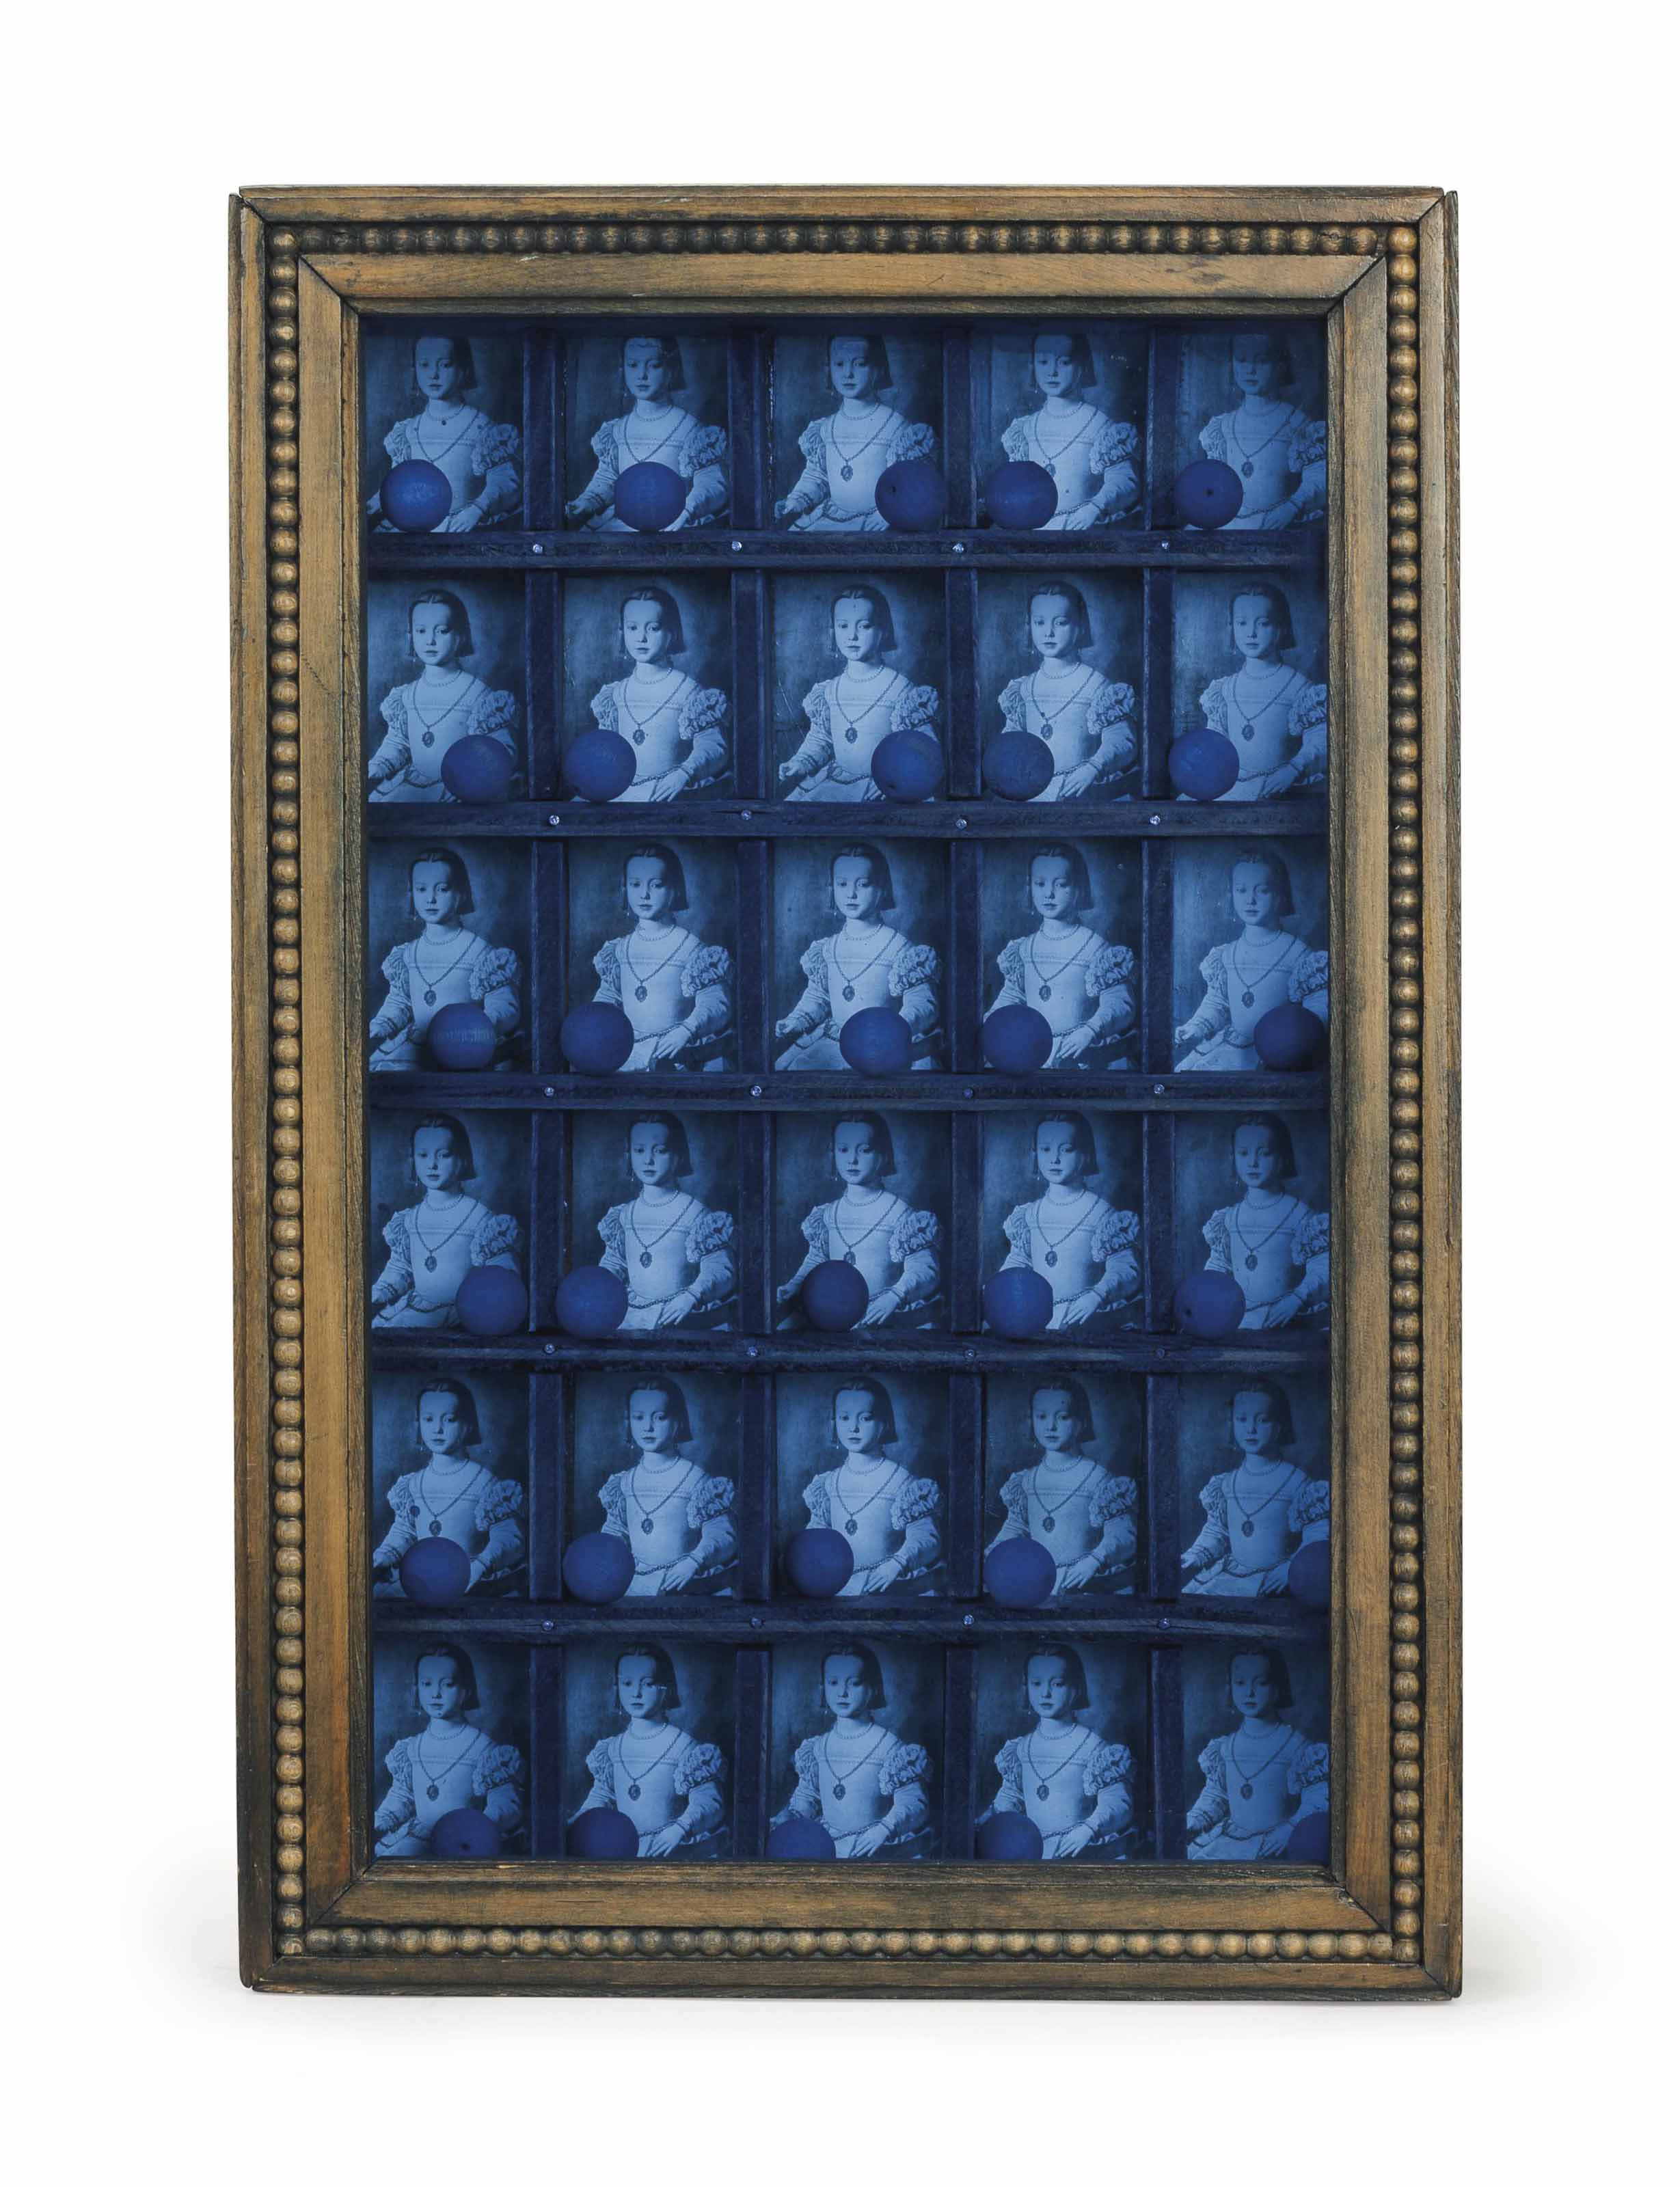 Untitled (Compartmented Medici Princess [Bronzino])